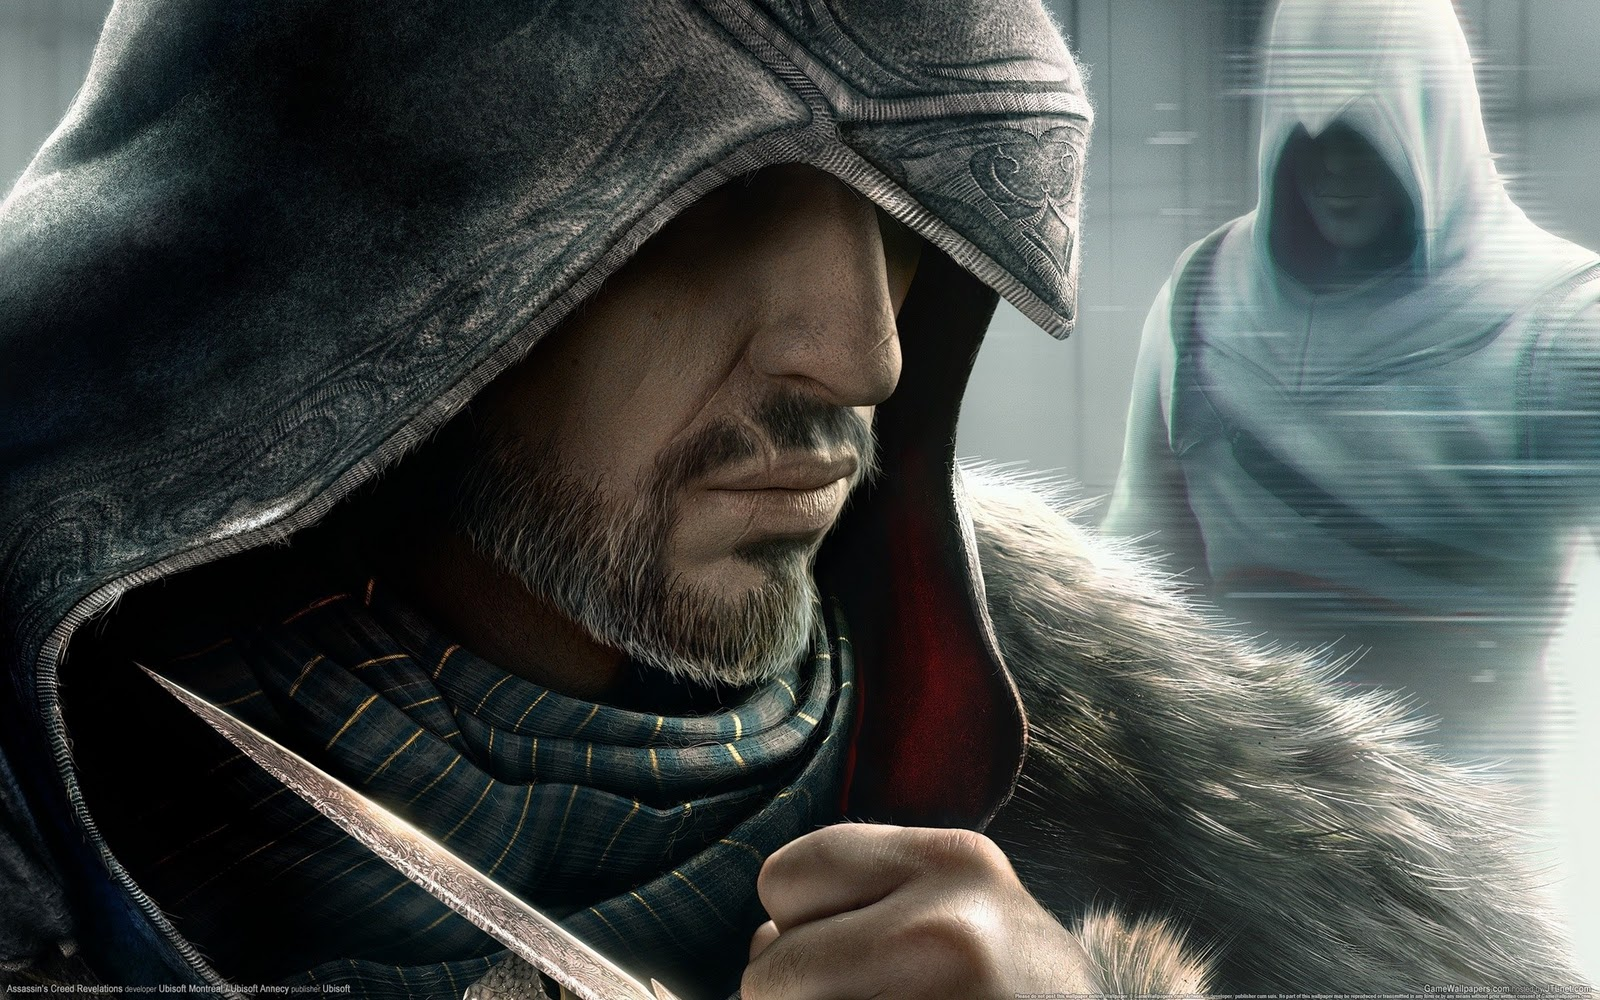 assassins creed revelations wallpapers - 64 Assassin s Creed Revelations HD Wallpapers